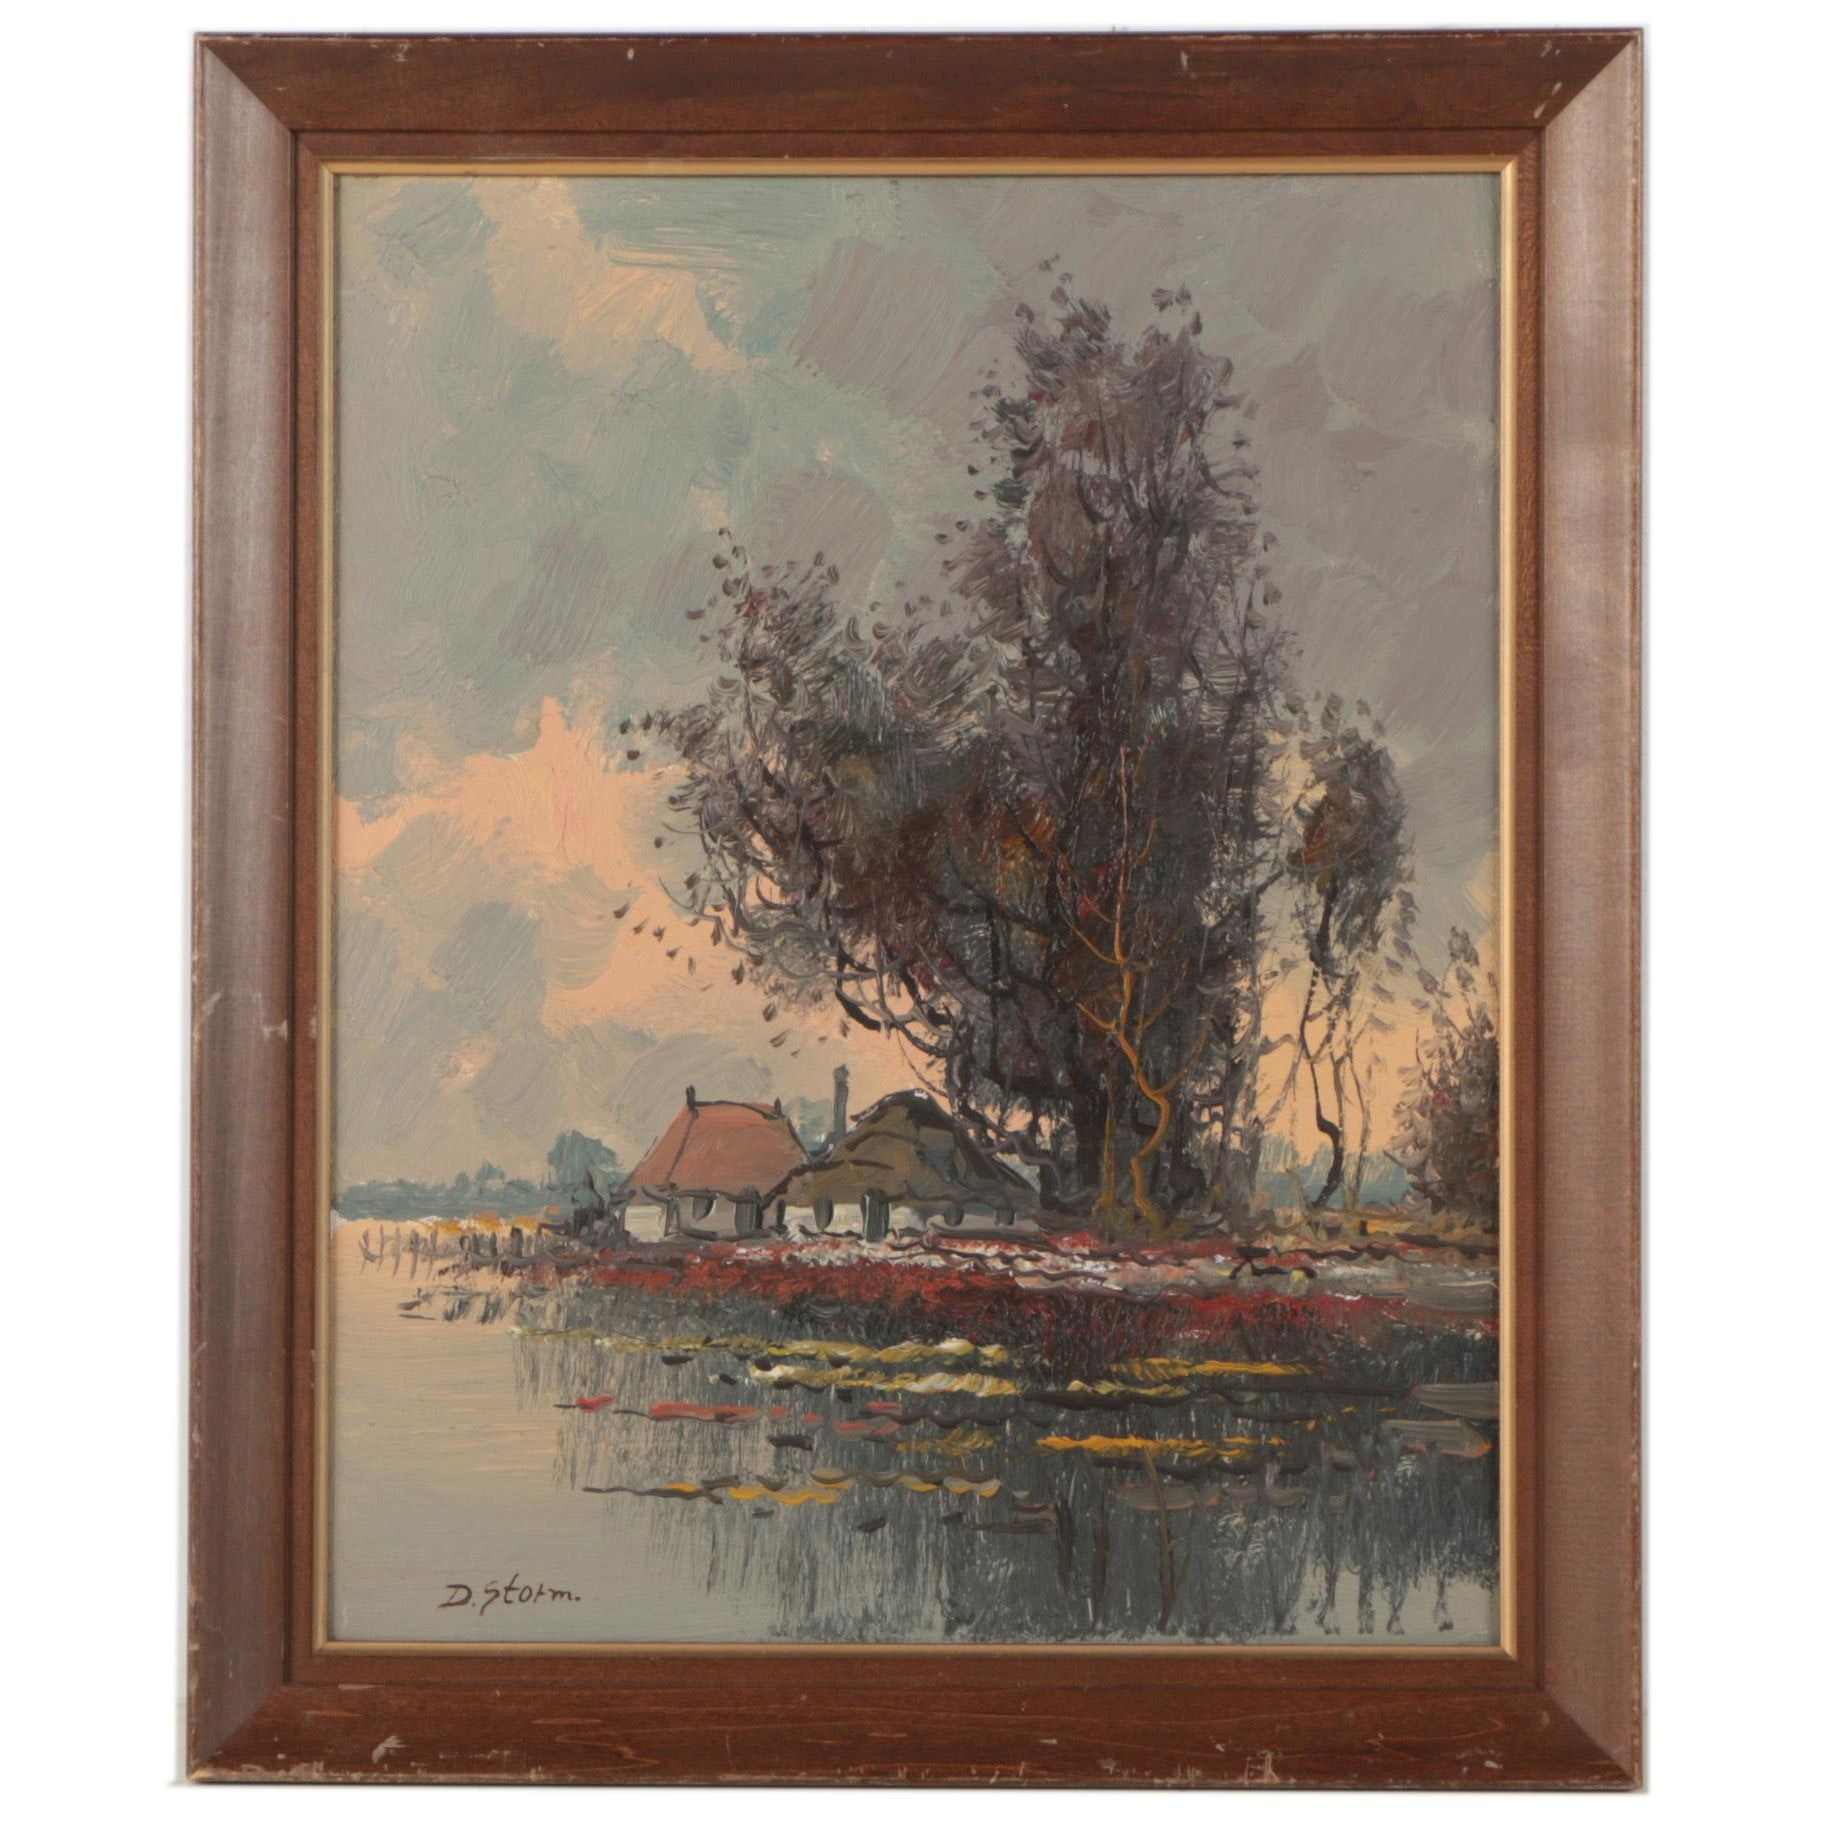 D. Storm Oil Painting of Lakeside Village